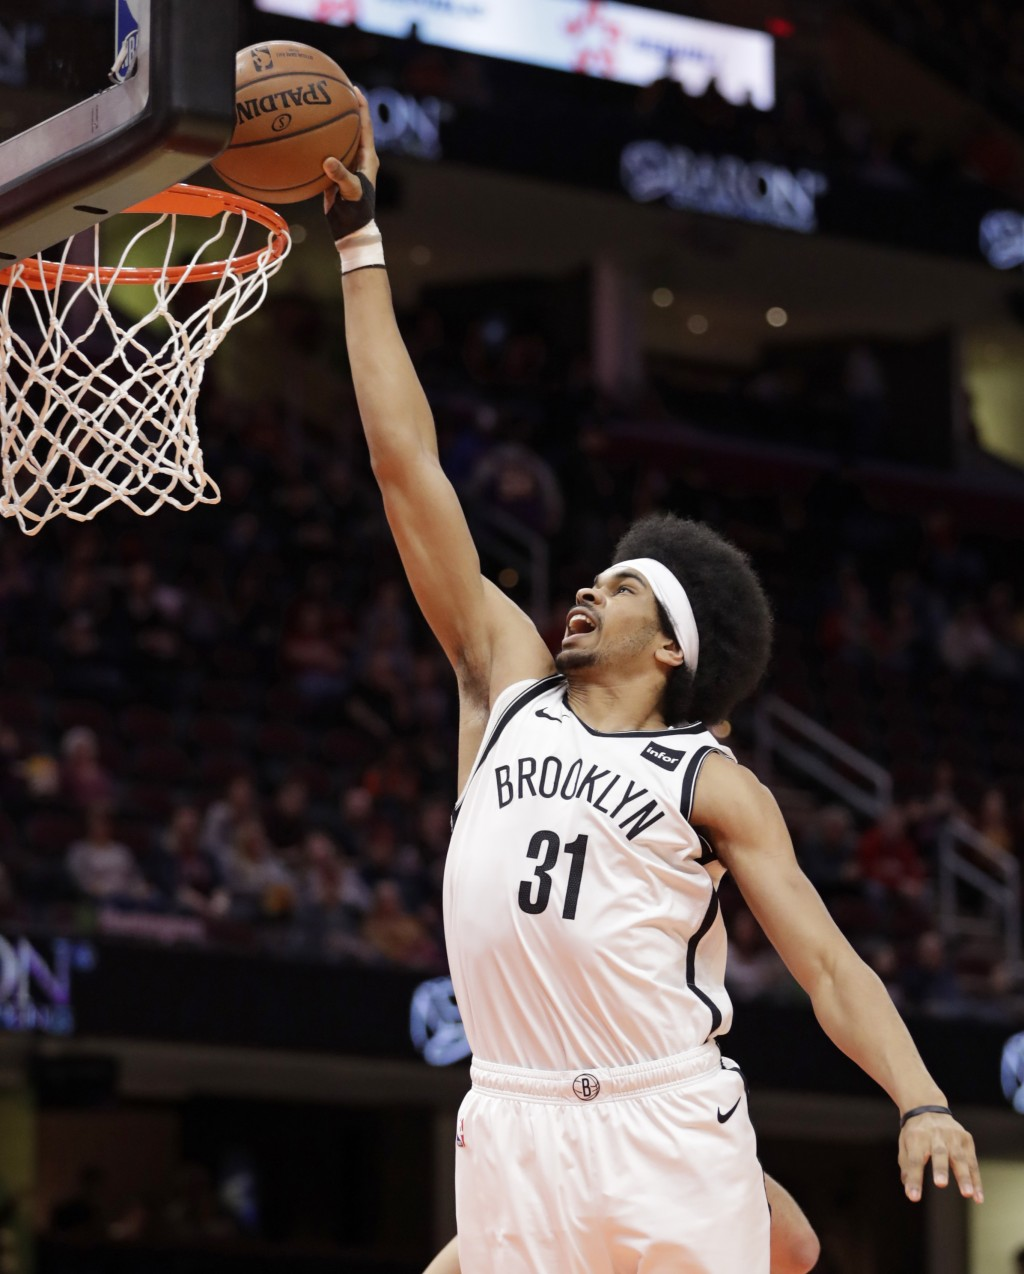 Brooklyn Nets' Jarrett Allen dunks against the Cleveland Cavaliers in the first half of an NBA basketball game, Wednesday, Feb. 13, 2019, in Cleveland